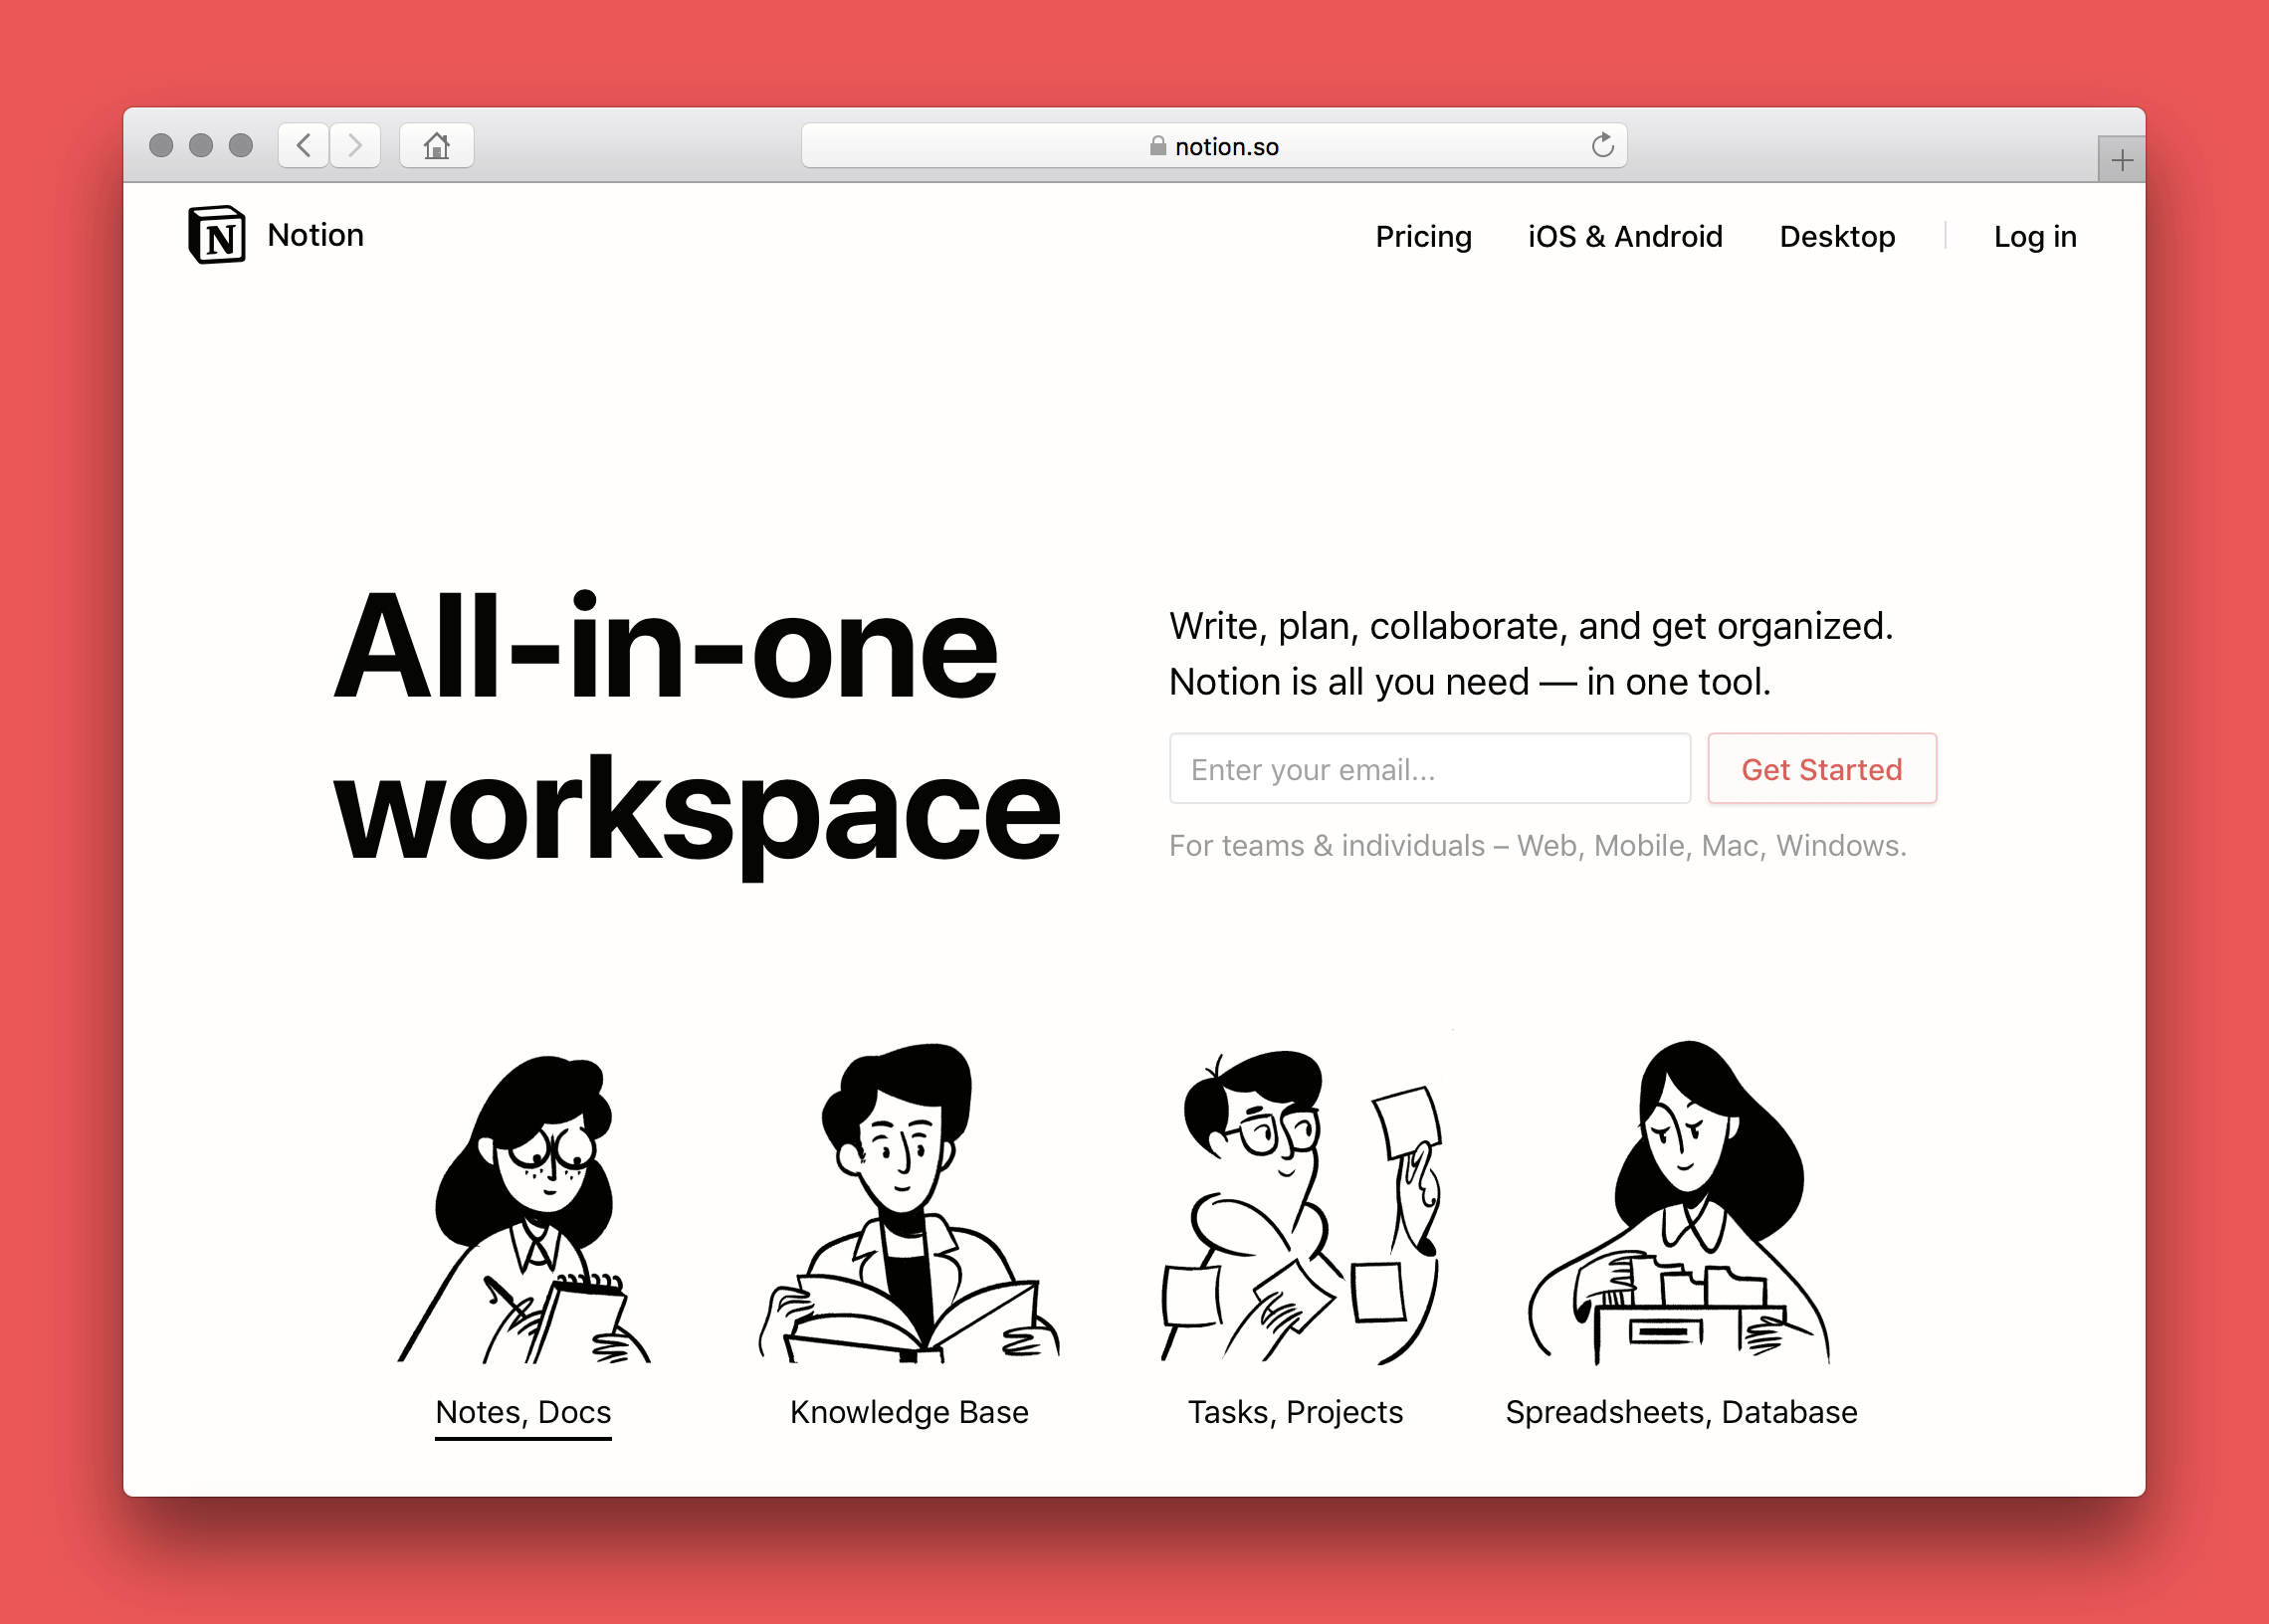 A screenshot of Notion's homepage. It says Notion is an all-in-one workspace and there is a form to enter an email address and create an account. Black and white illustrations of four people are below the form.